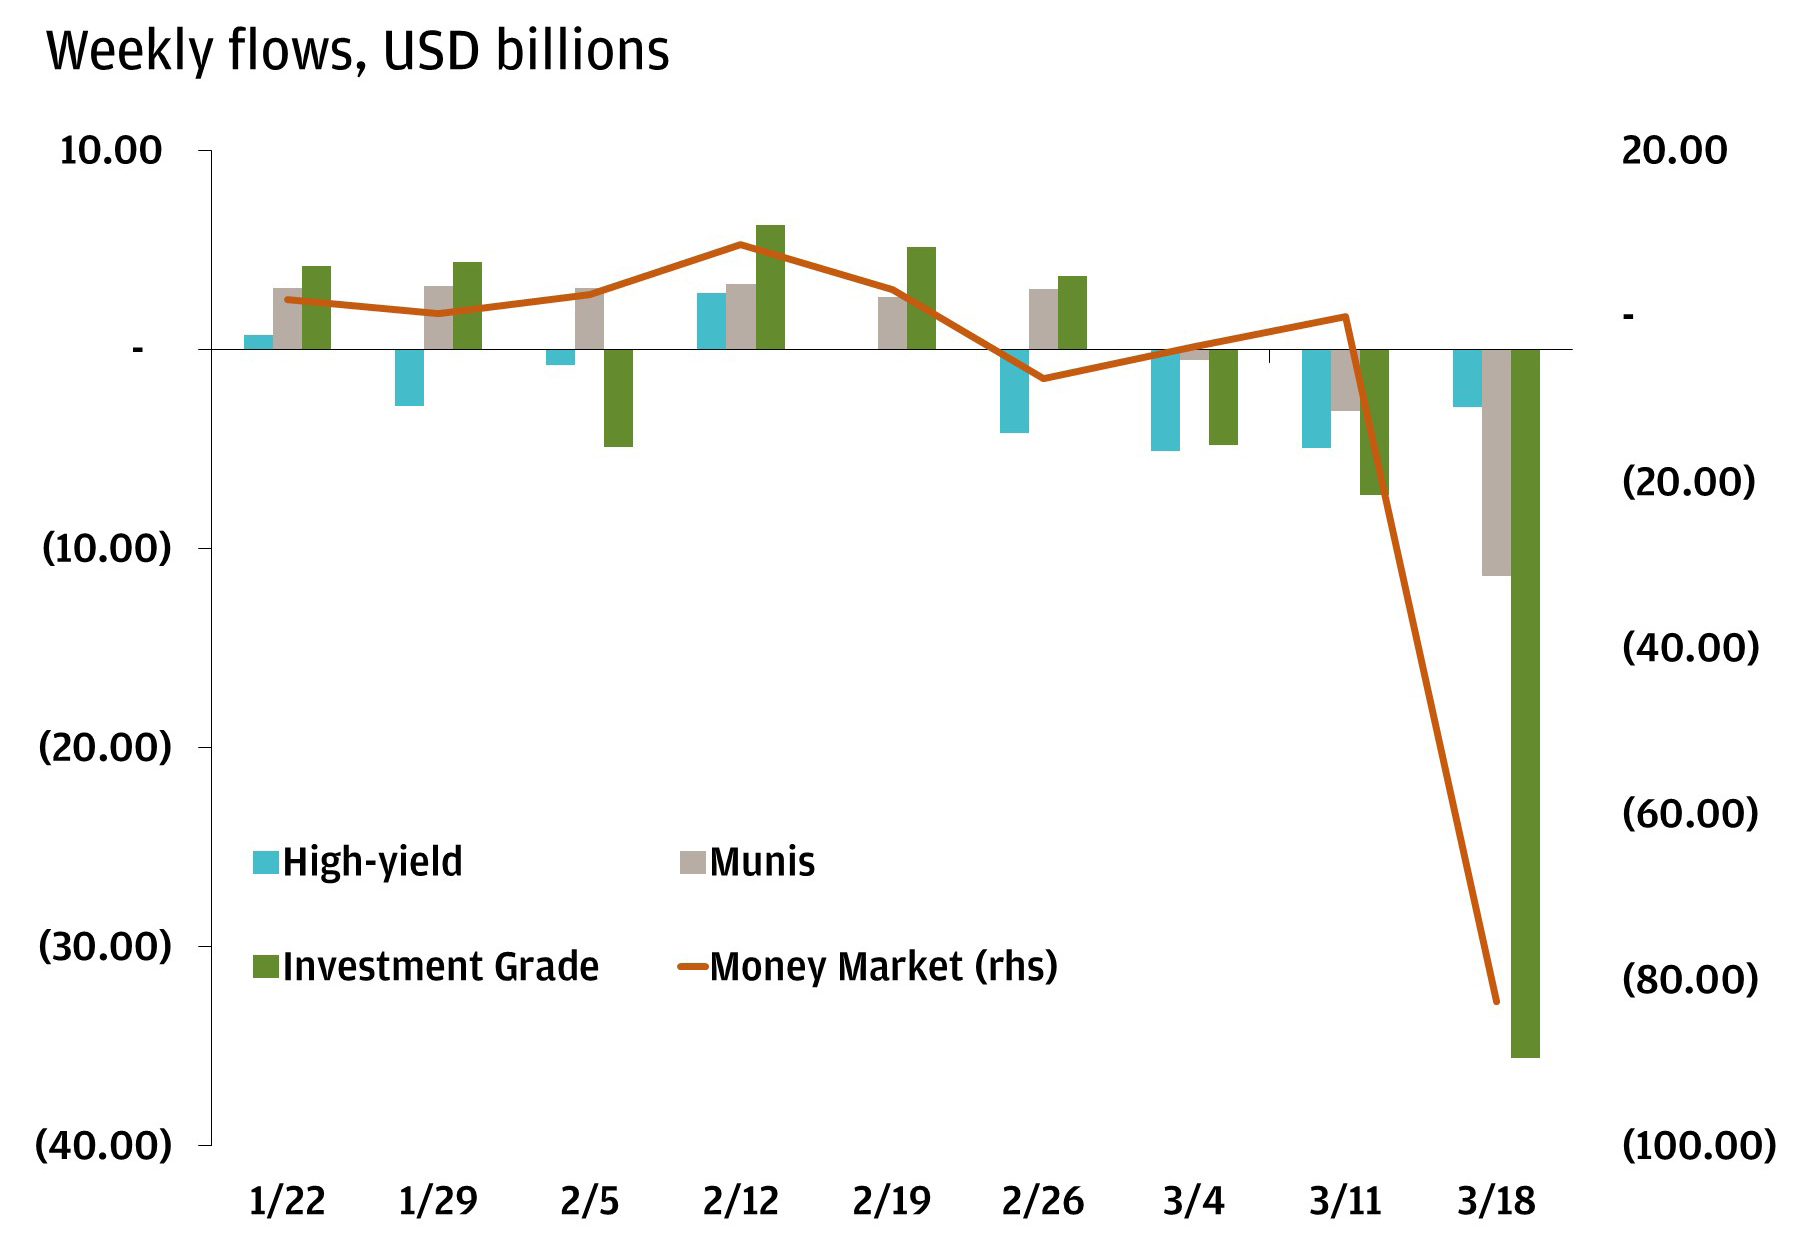 Bar chart shows the weekly flows (in USD billions) of high-yield bonds, munis, investment grade bonds and the Money Market index from January 2020 to March 2020. This highlights that in March 2020, all four have seen the largest outflows ever experienced during this time period; most affected have been investment grade bonds.